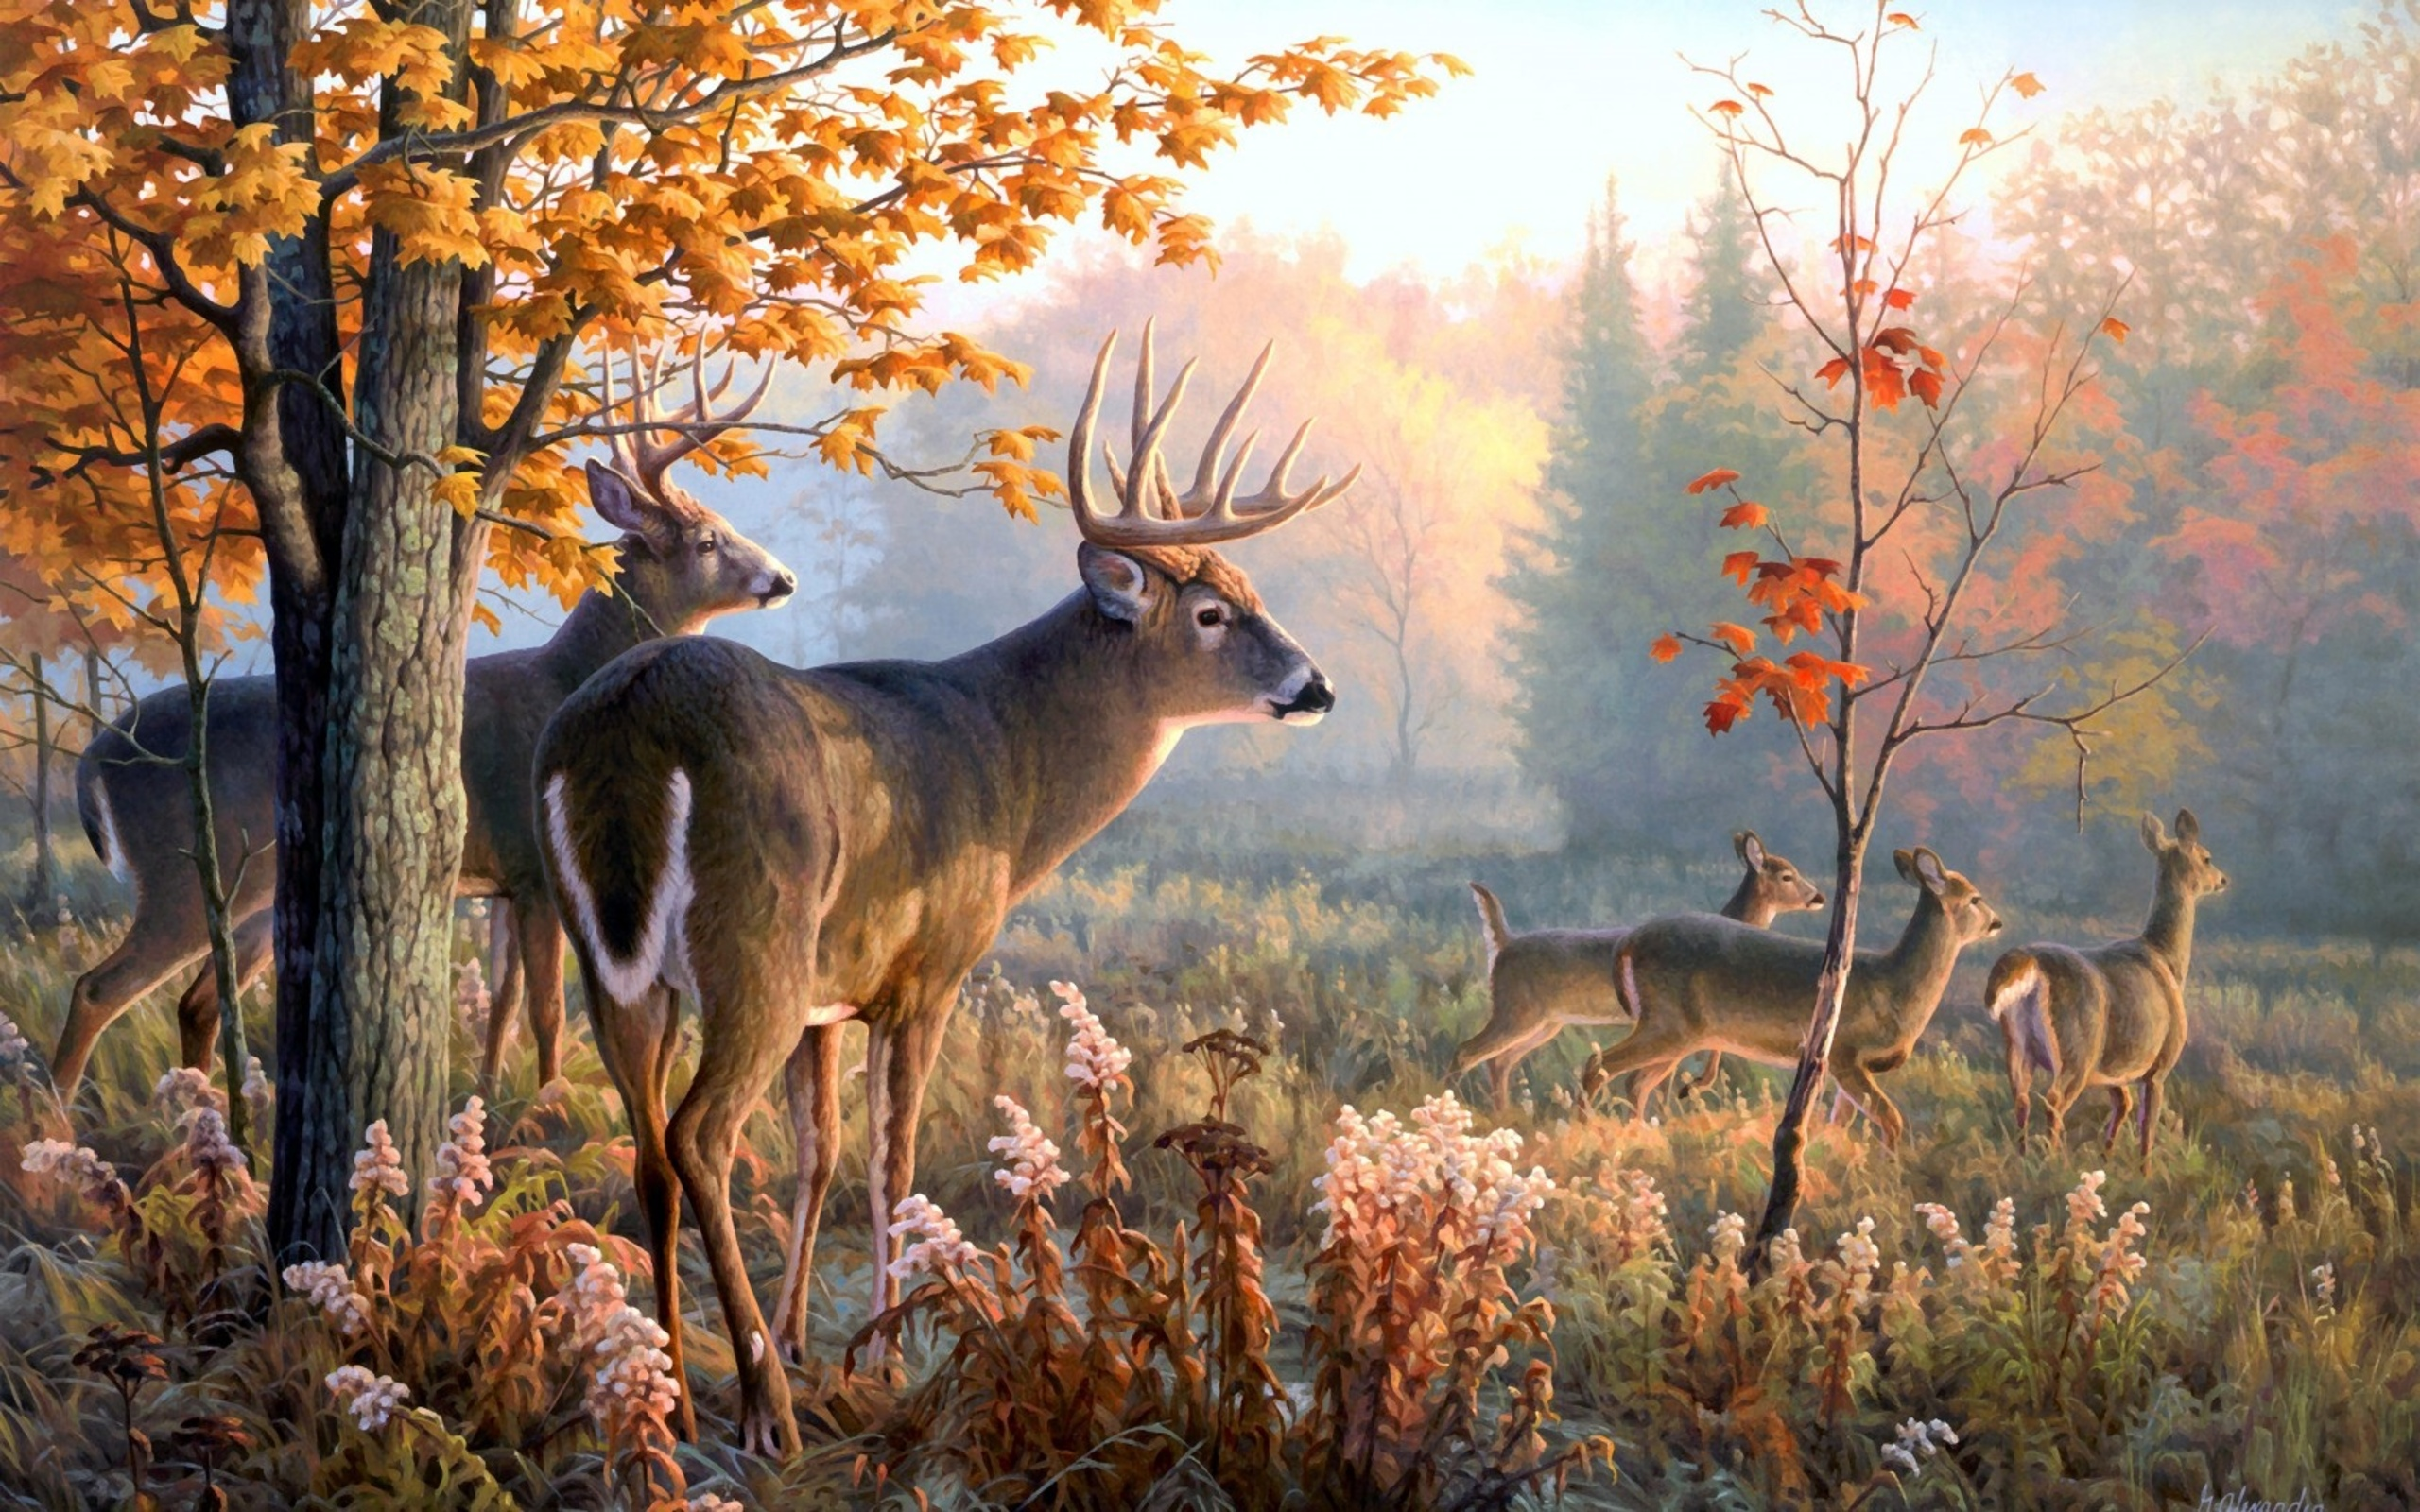 deer desktop hd wallpapers Desktop Backgrounds for HD Wallpaper 2560x1600